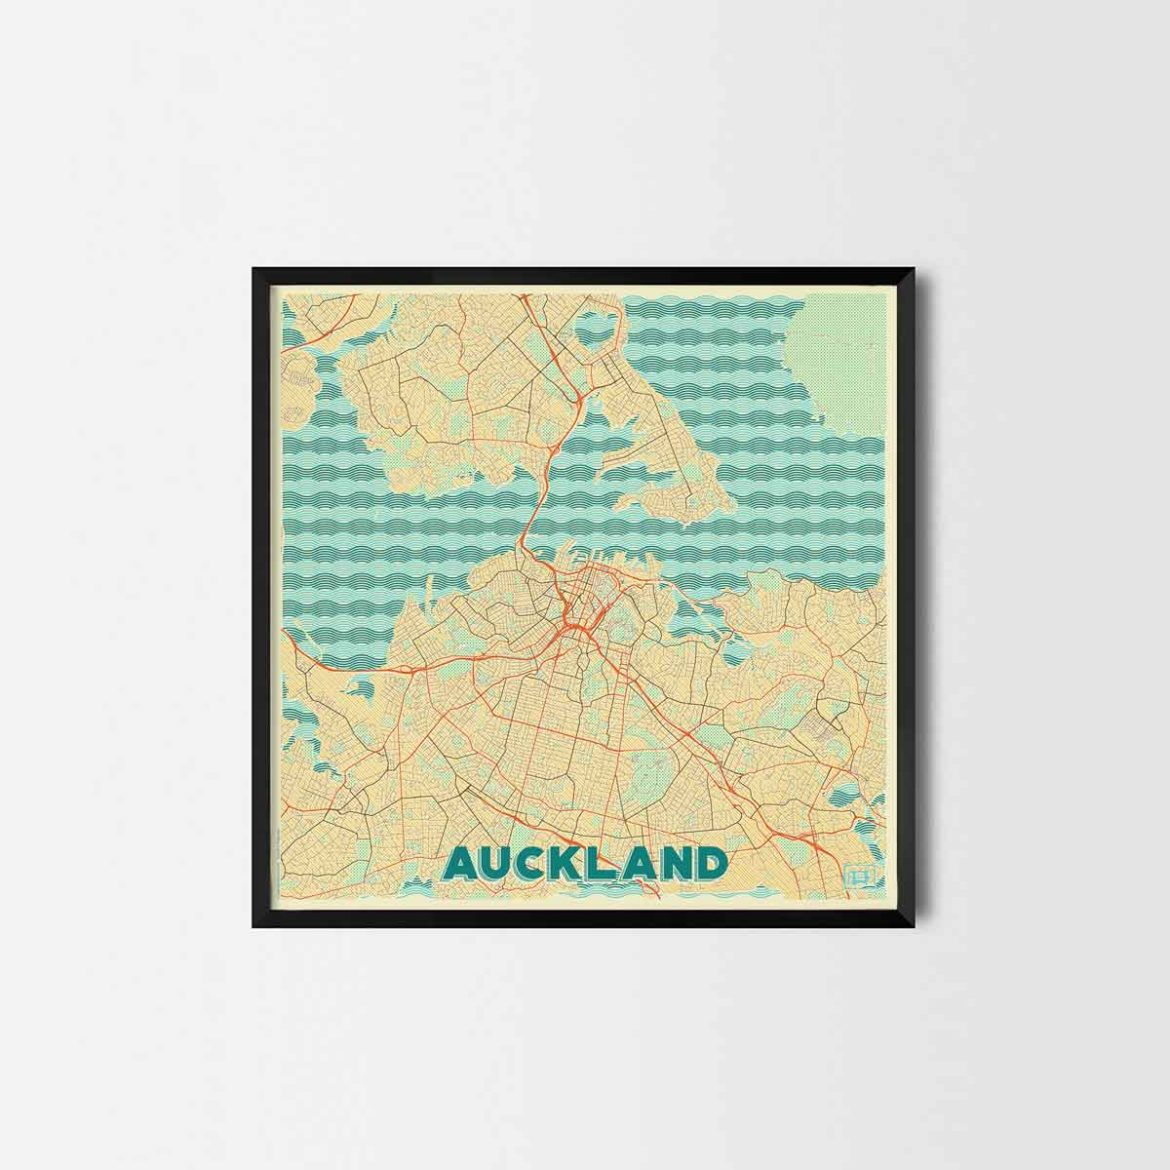 Auckland gift - Map Art Prints and Posters, Home Decor Gifts